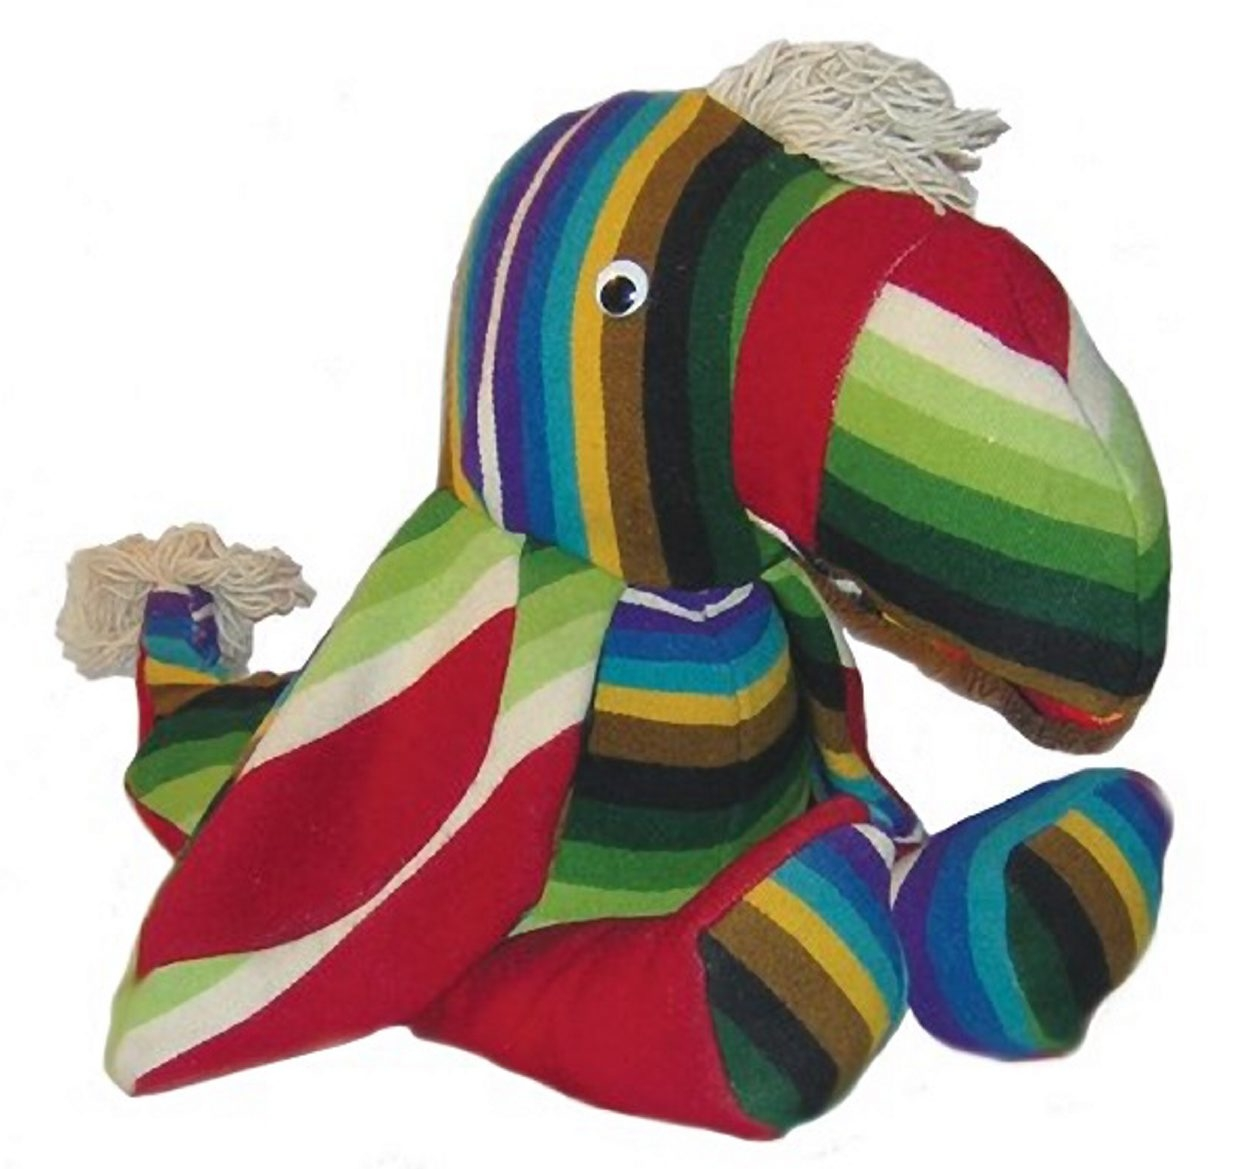 Did the auction bidder want this toy because it was made by an American Indian, or made from a collectible blanket, or just because it was a colorful toy? Whatever the reason, it sold for $115 at an Allard auction last month in Mesa, Ariz.